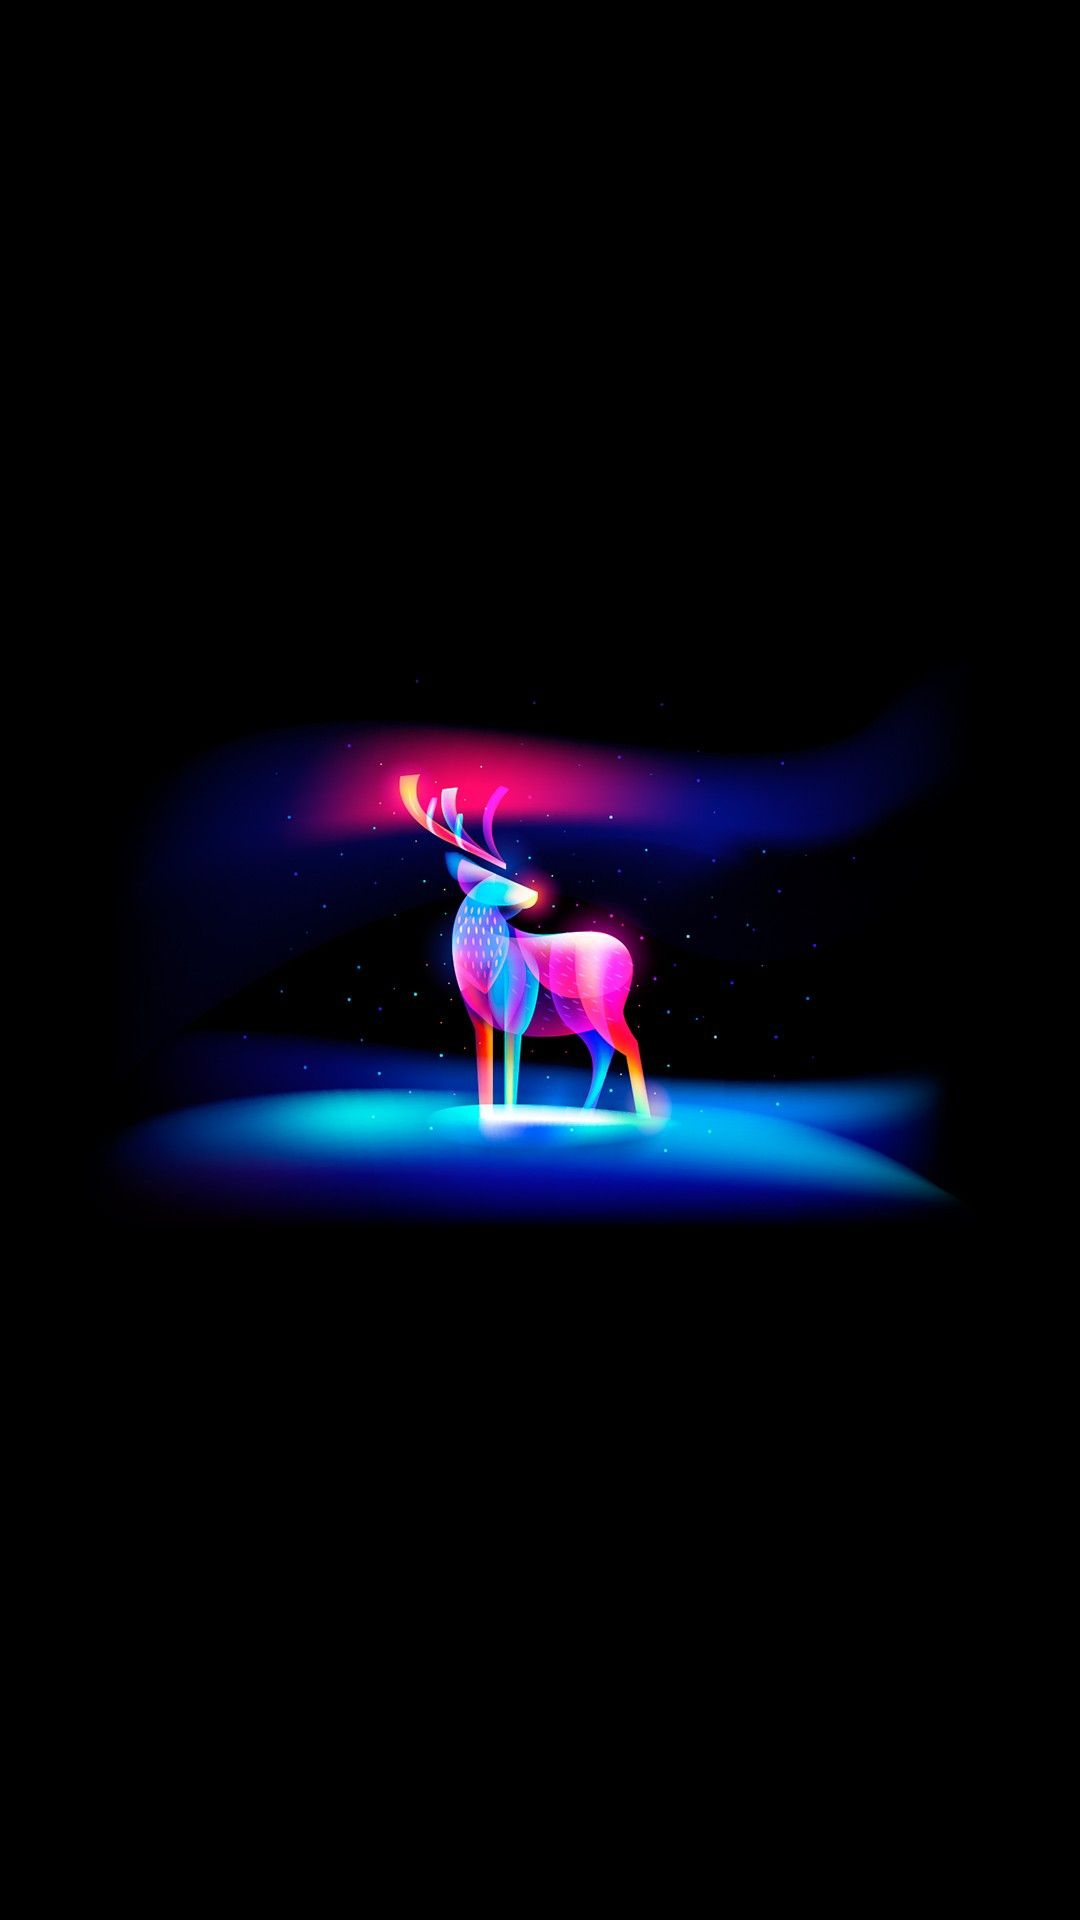 Cute Funny Wallpaper Images Neon Art Deer Iphone Wallpaper Iphoneswallpapers Com